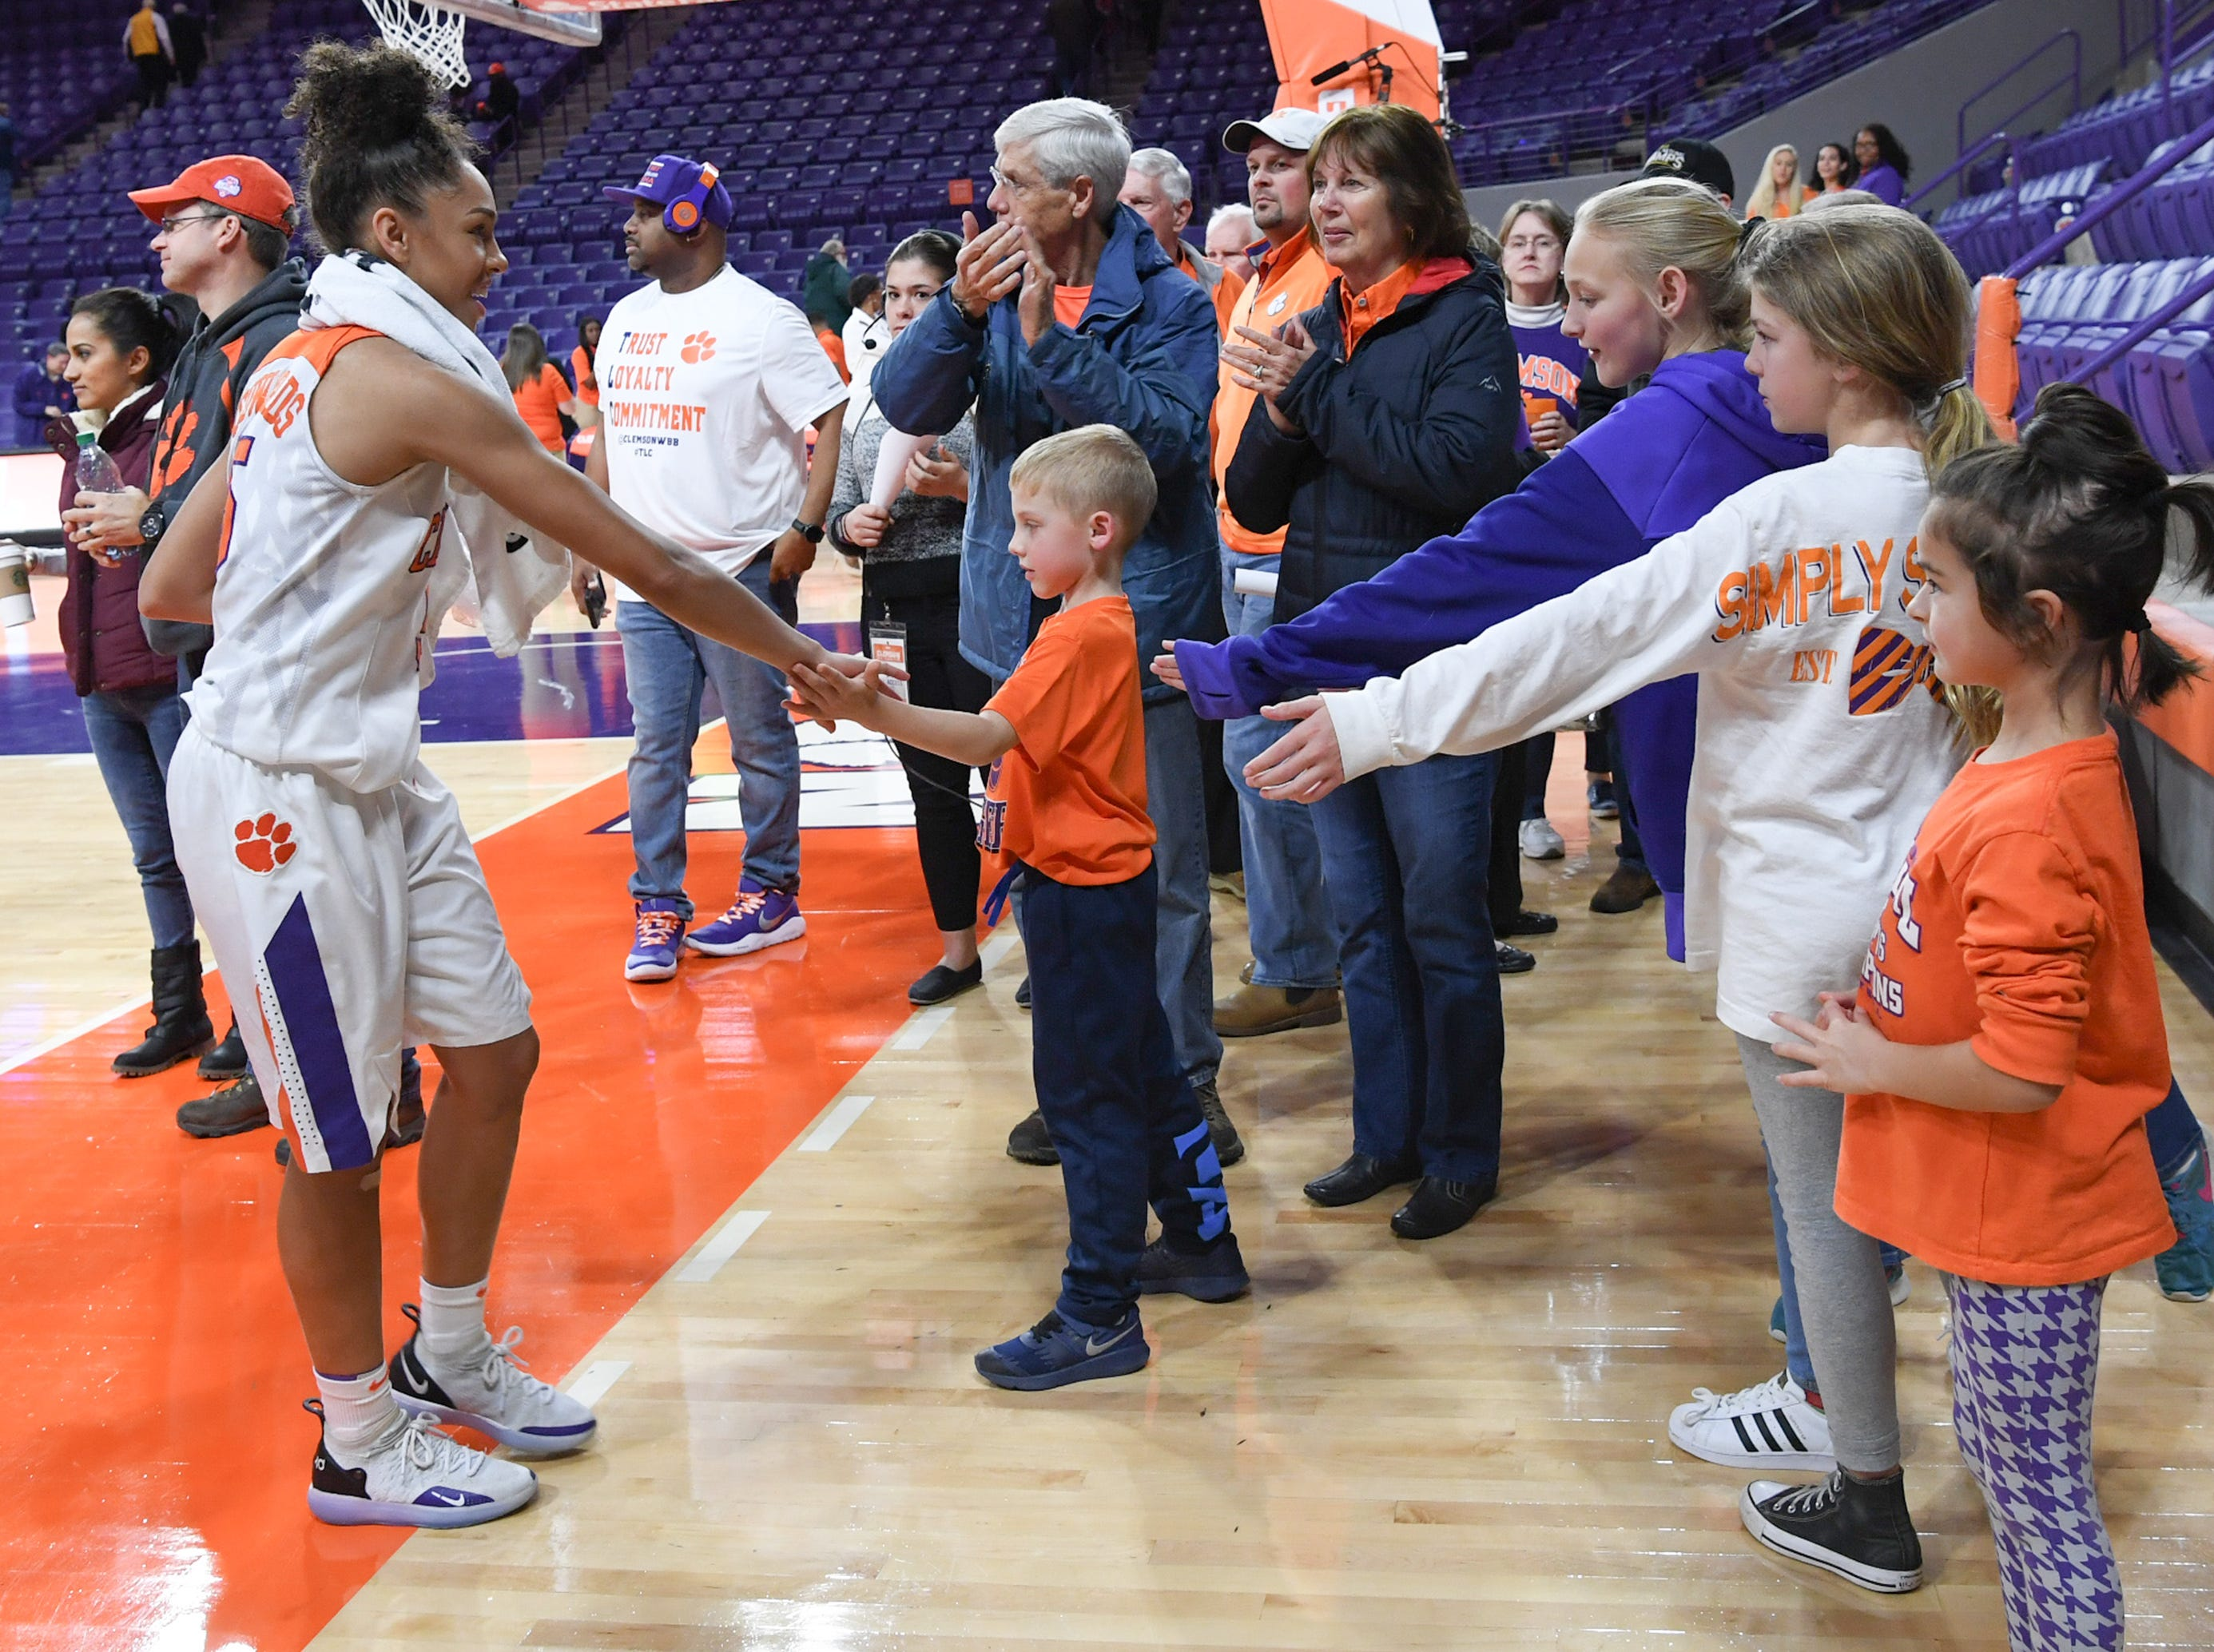 Clemson guard Danielle Edwards(5) greets fans after their win over Georgia Tech in Clemson Thursday, January 17, 2019.